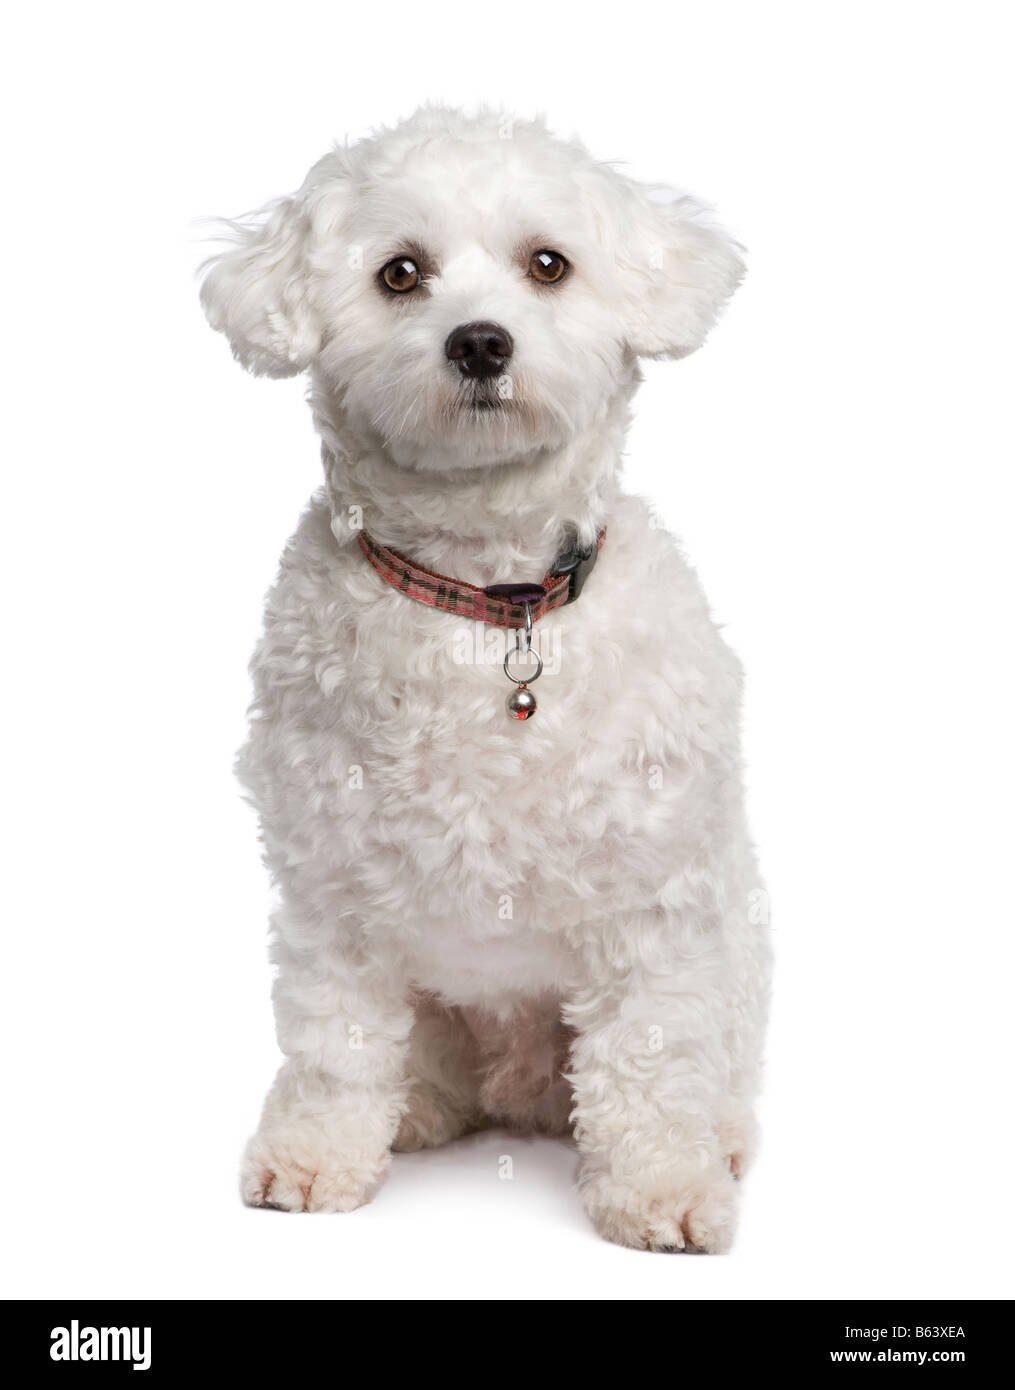 maltese dog 18 months in front of a white background - Stock Image